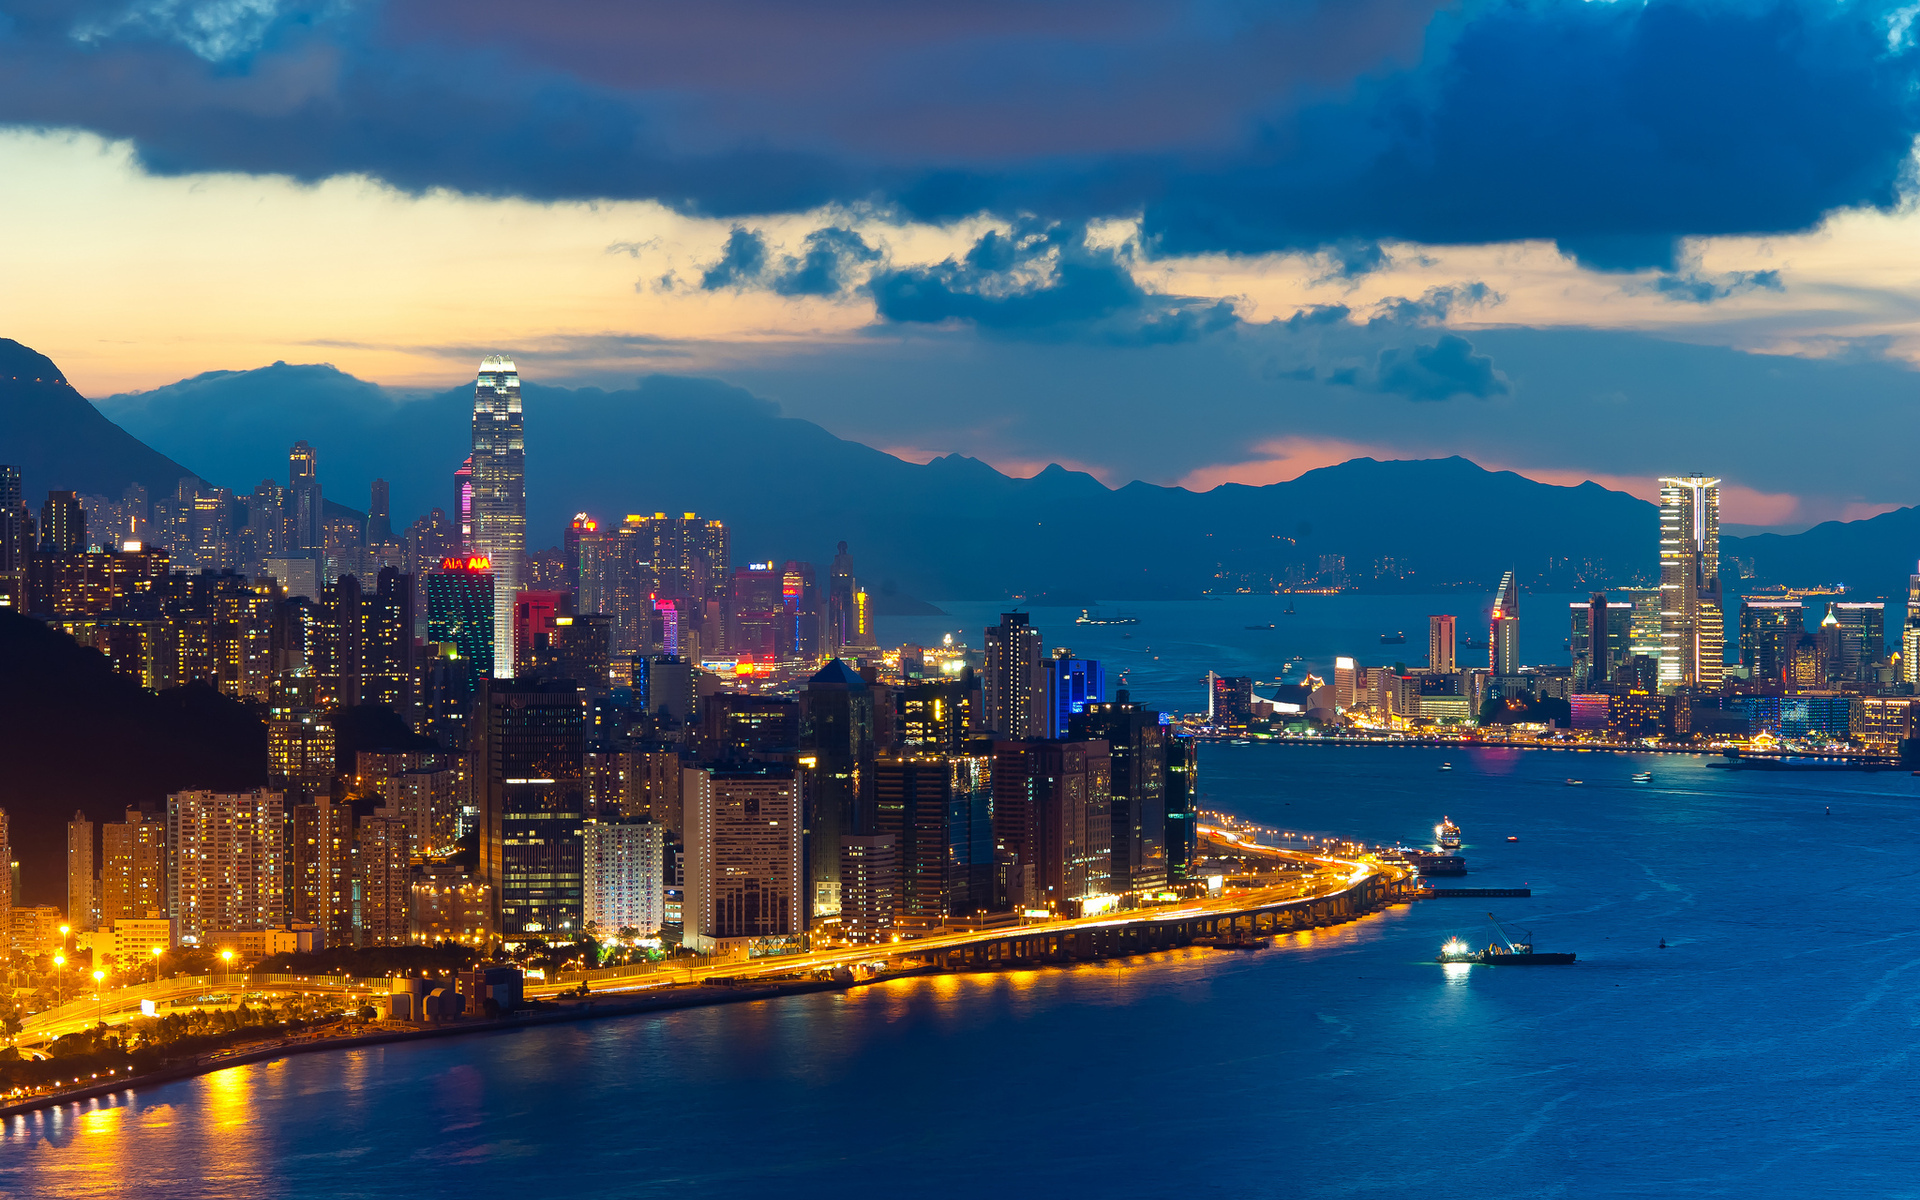 Hong kong evening